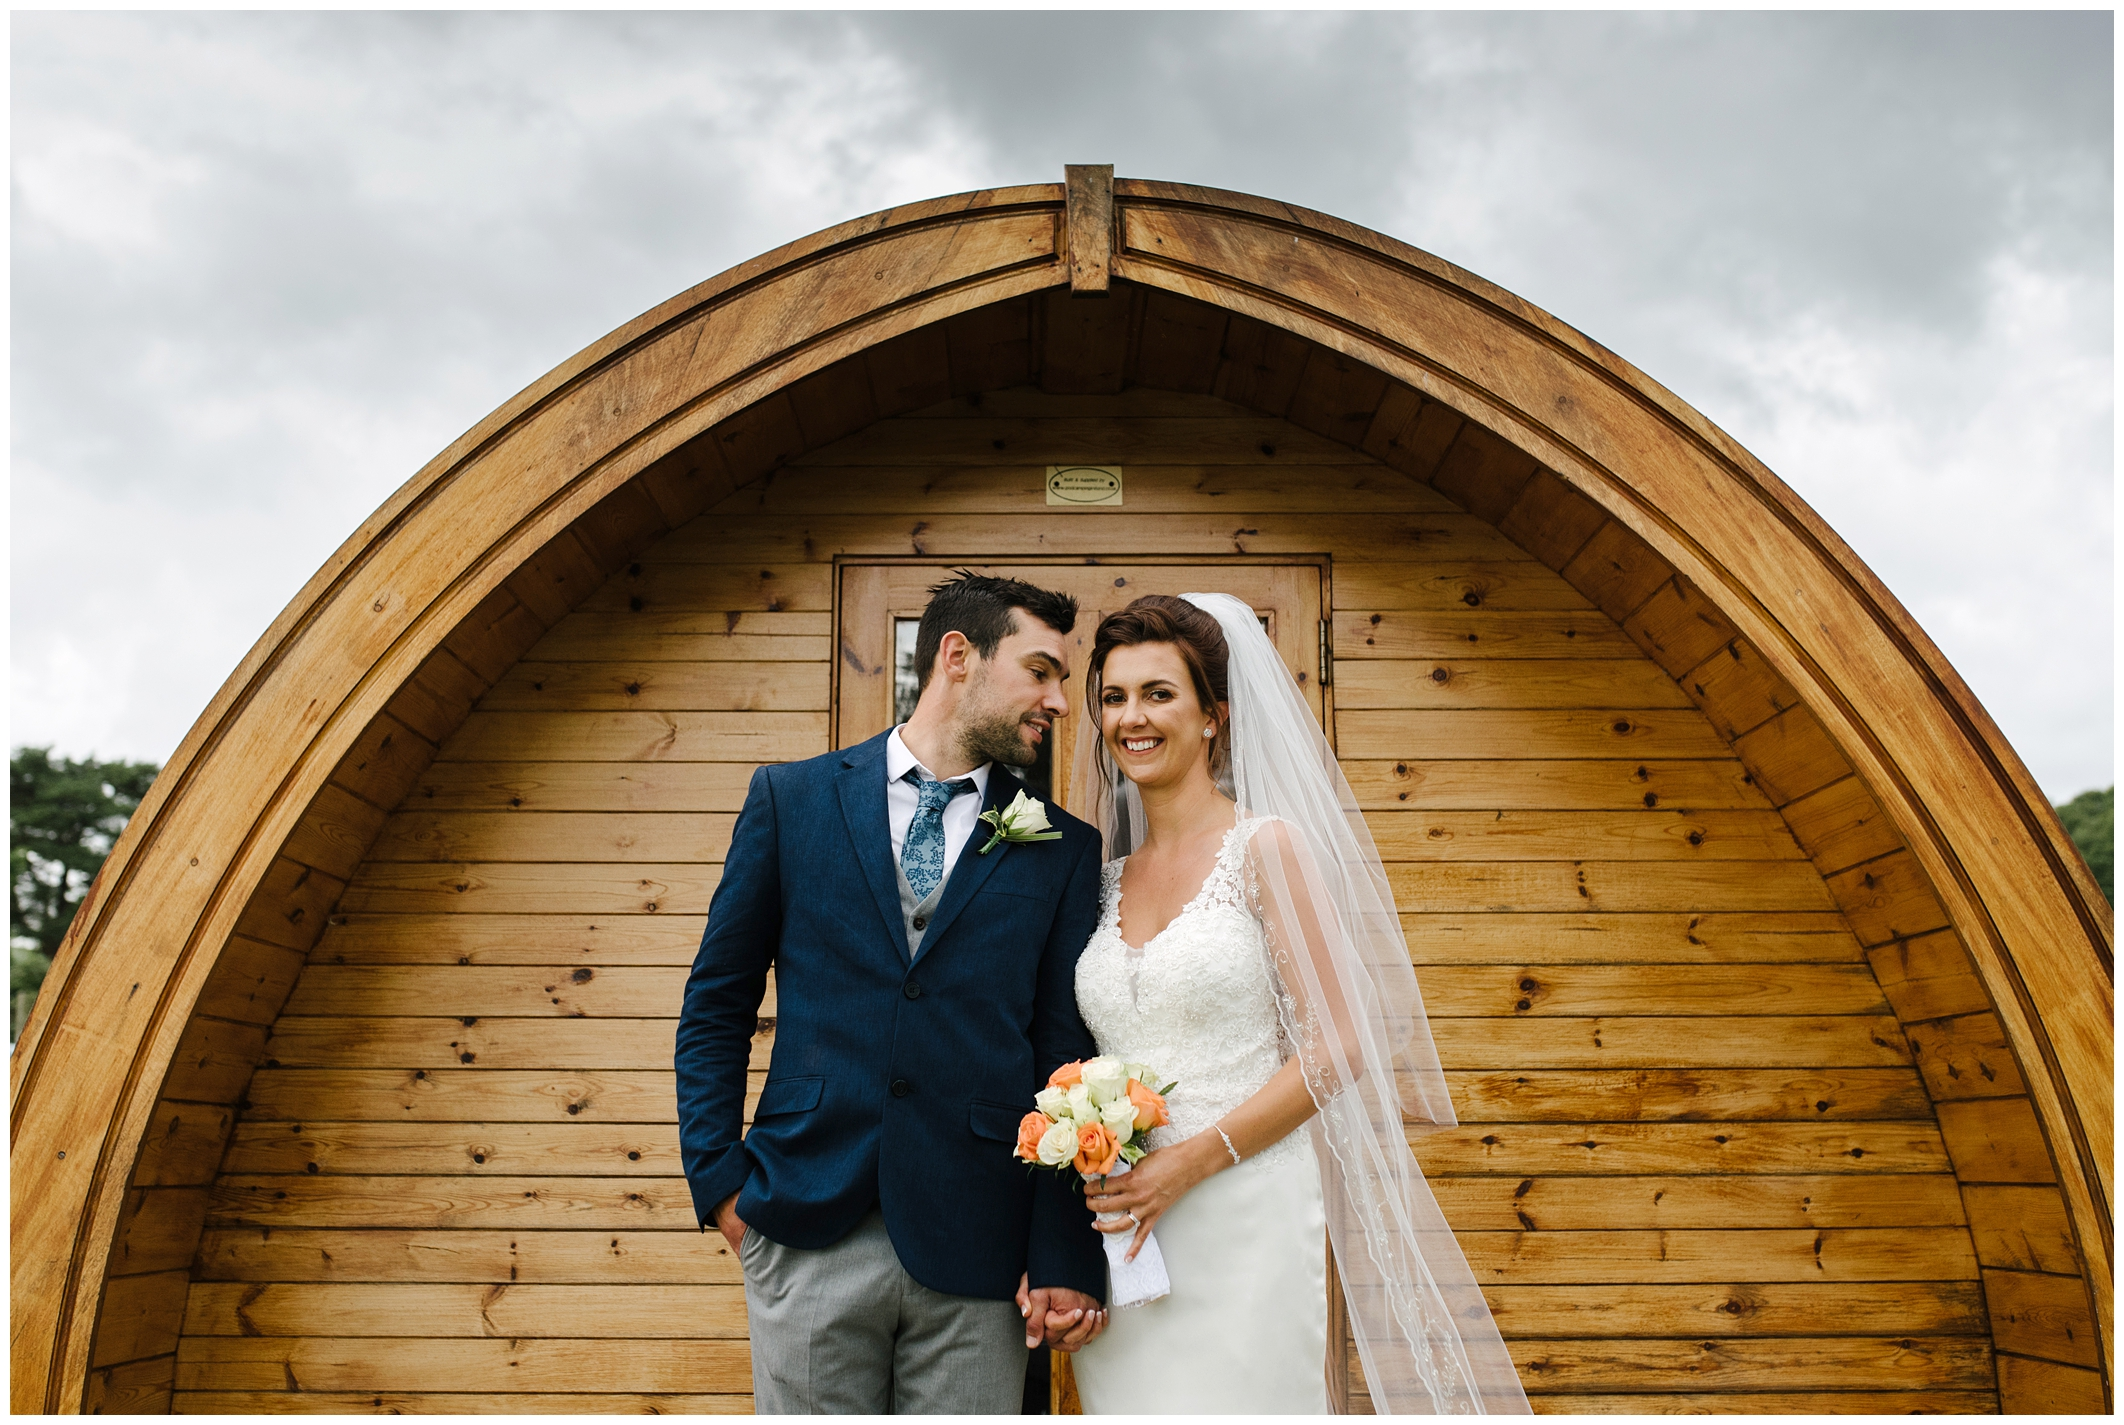 Lynsey_Andy_Rossharbour_Fermanagh_wedding_jude_browne_photography_0104.jpg